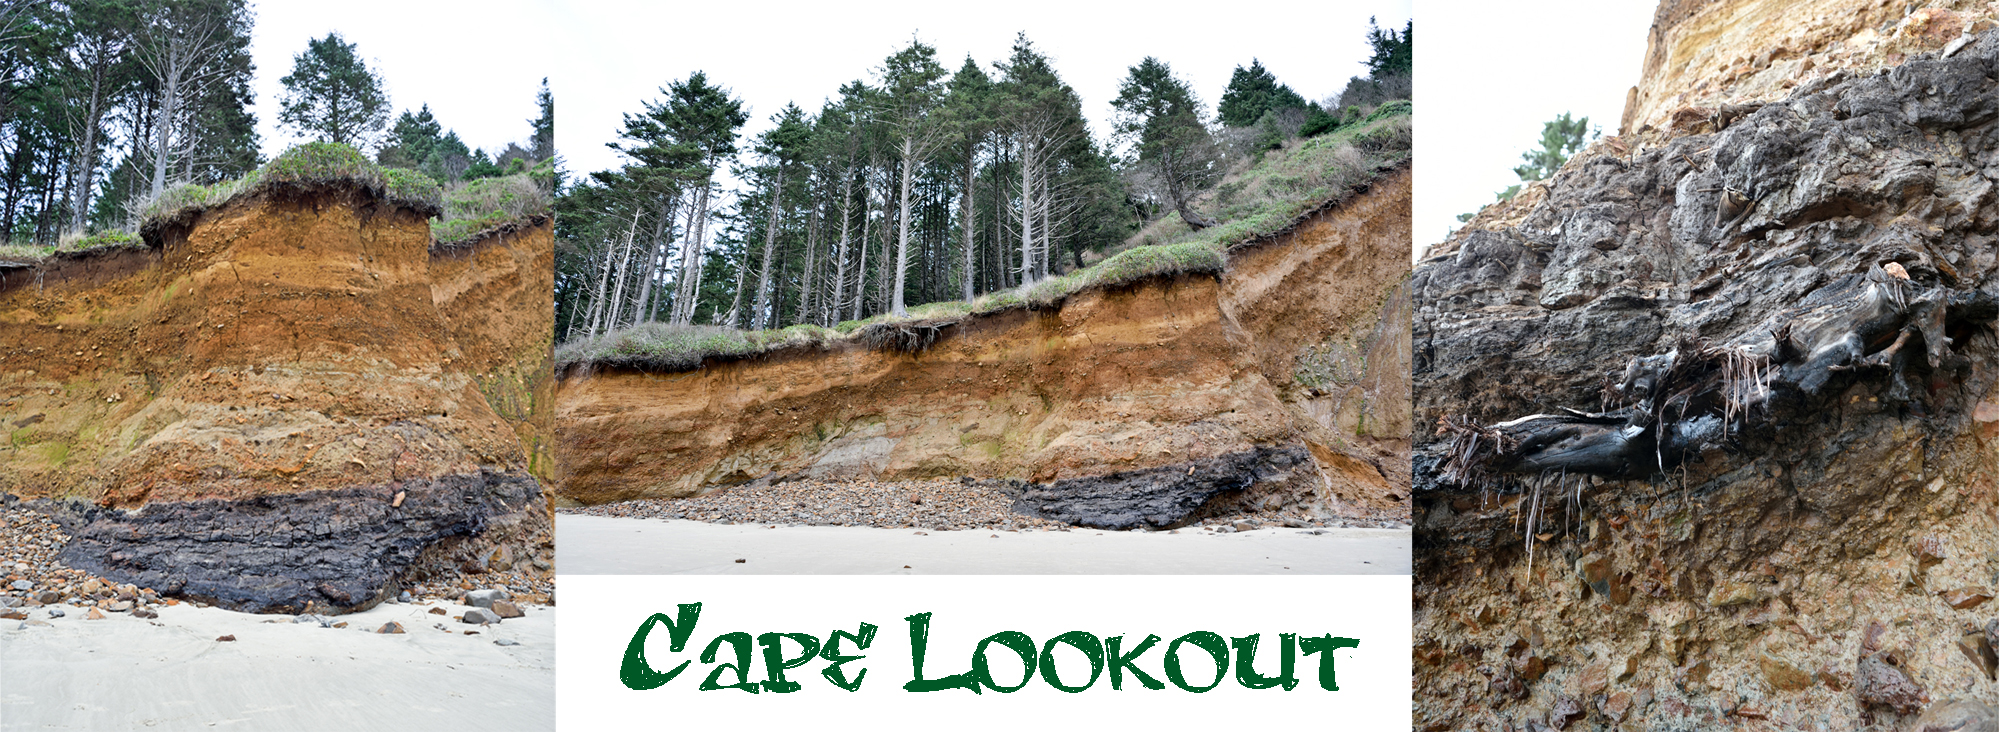 cape-lookout-landslide-oregon-paleosol-beach